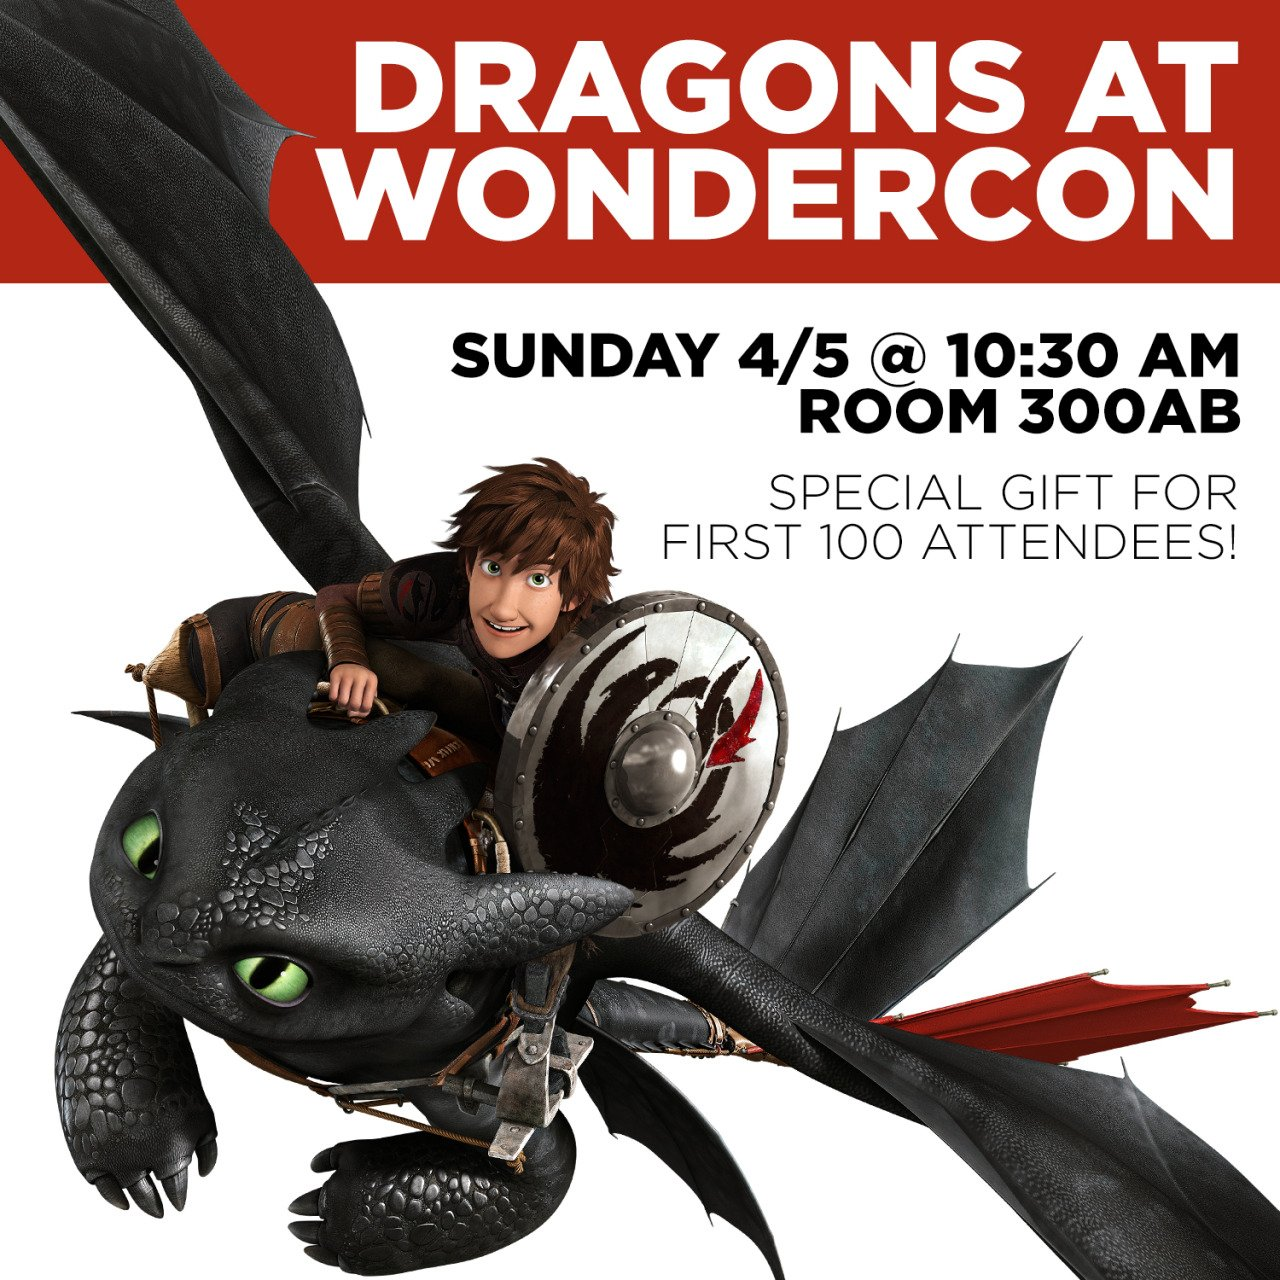 Dragons_Wondercon.jpg